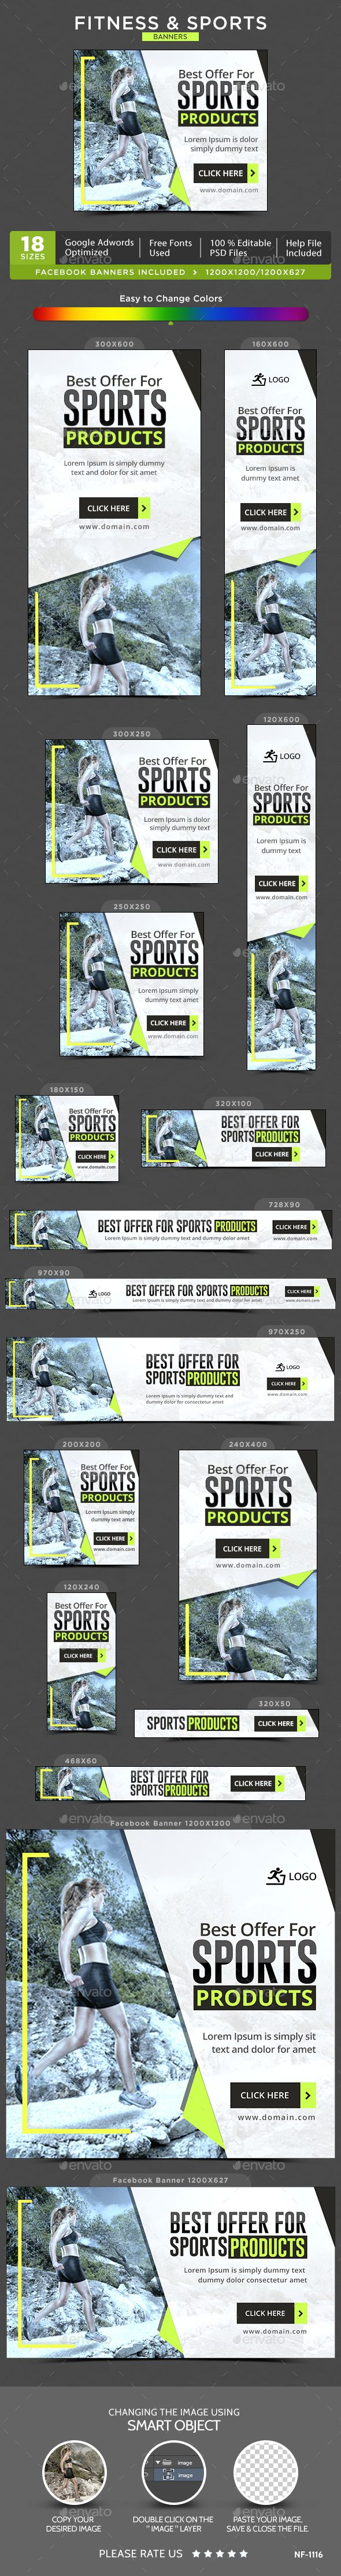 Fitness & Sports Web Banners Template PSD. Download here: http://graphicriver.net/item/fitness-sports-banners/15023451?ref=ksioks